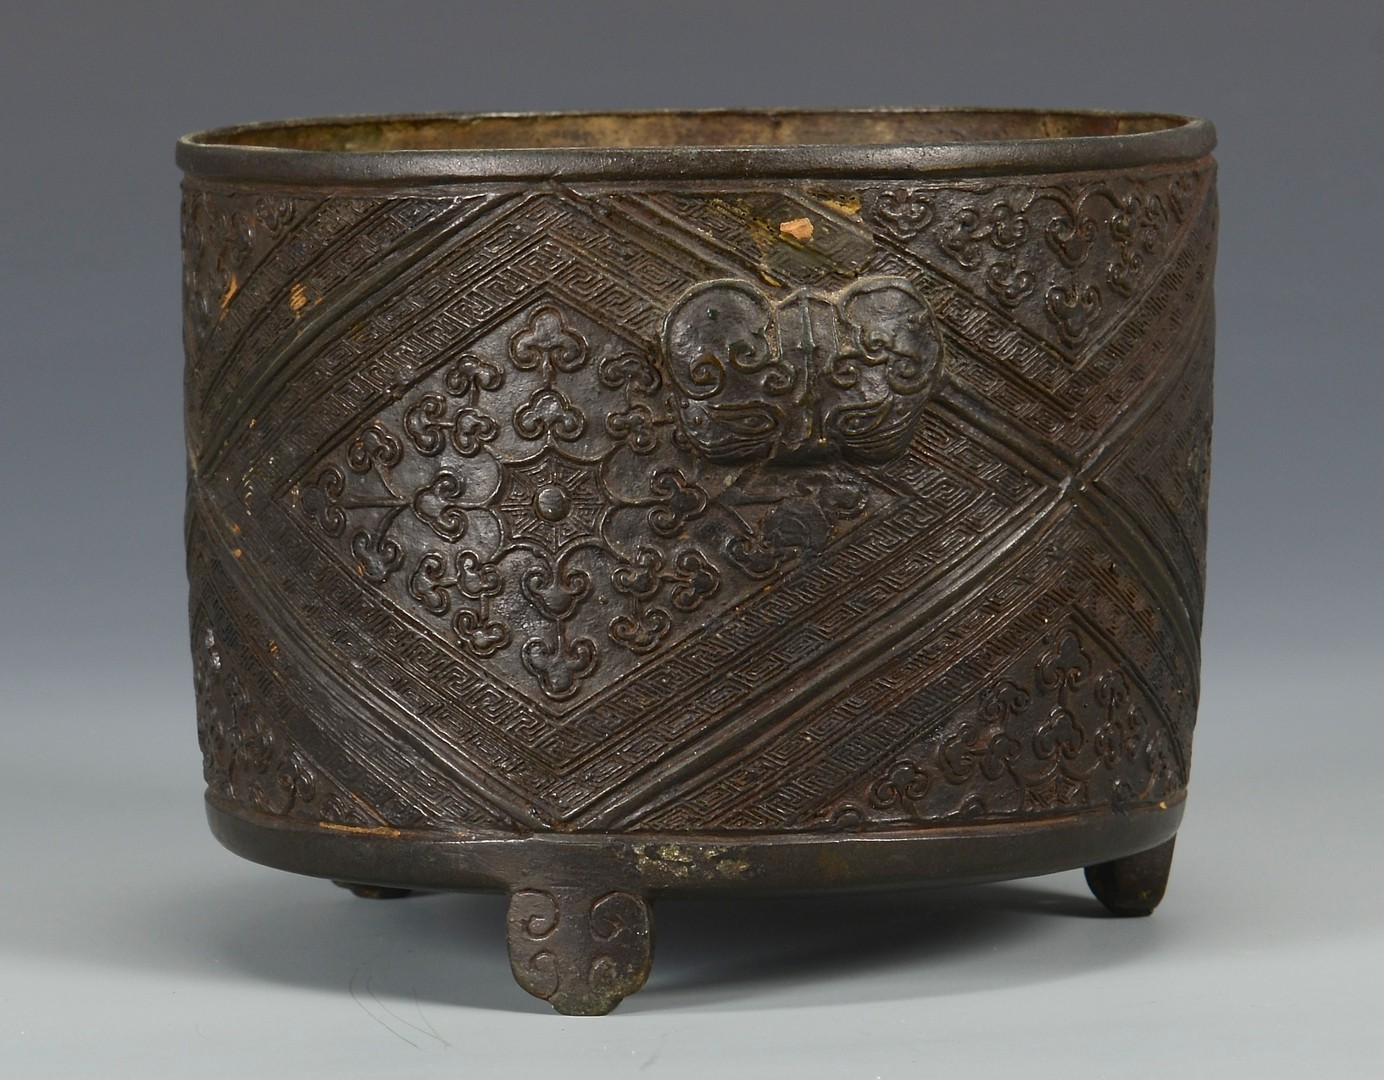 Lot 3594158: 19th c. Chinese Bronze Censer